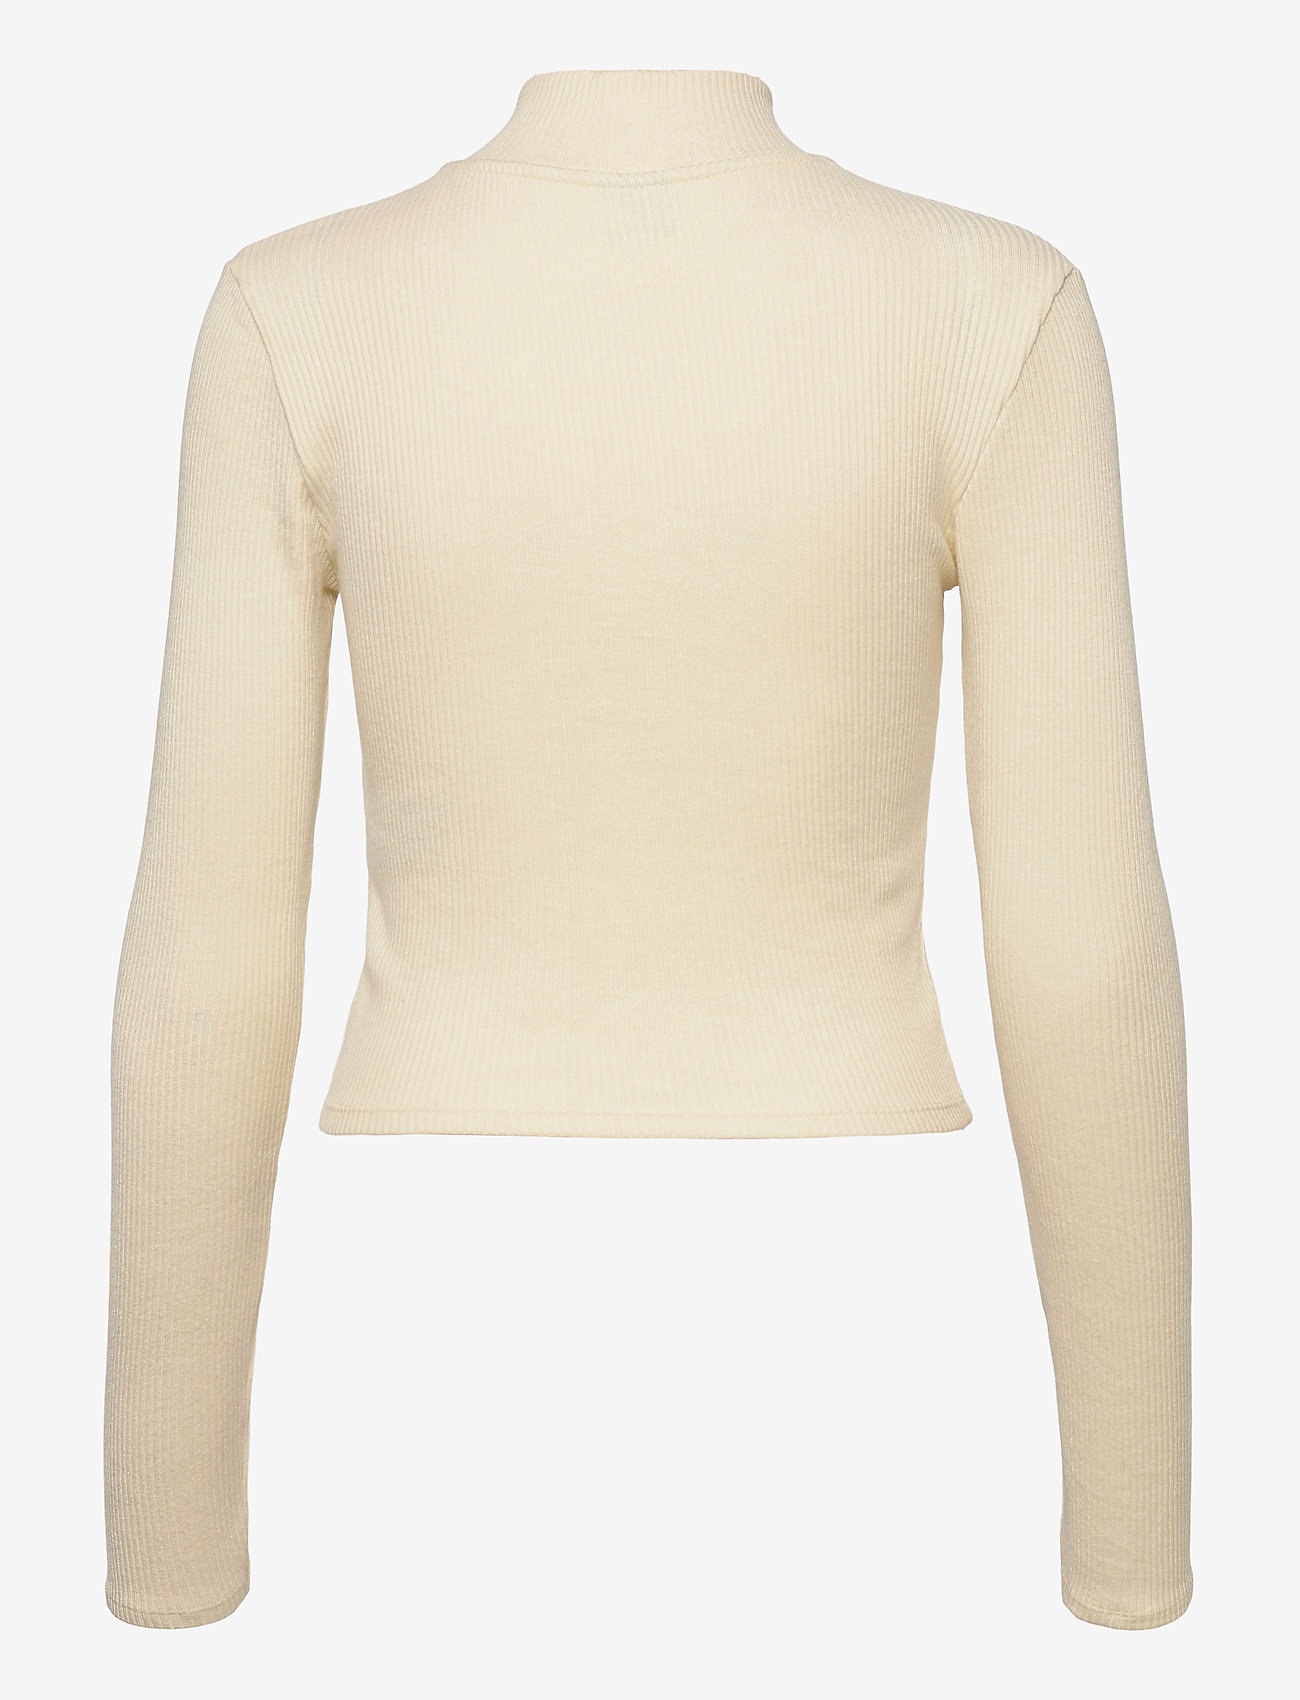 Gina Tricot - Eloise zip top - strikkede toppe - cloud cream (1601) - 1